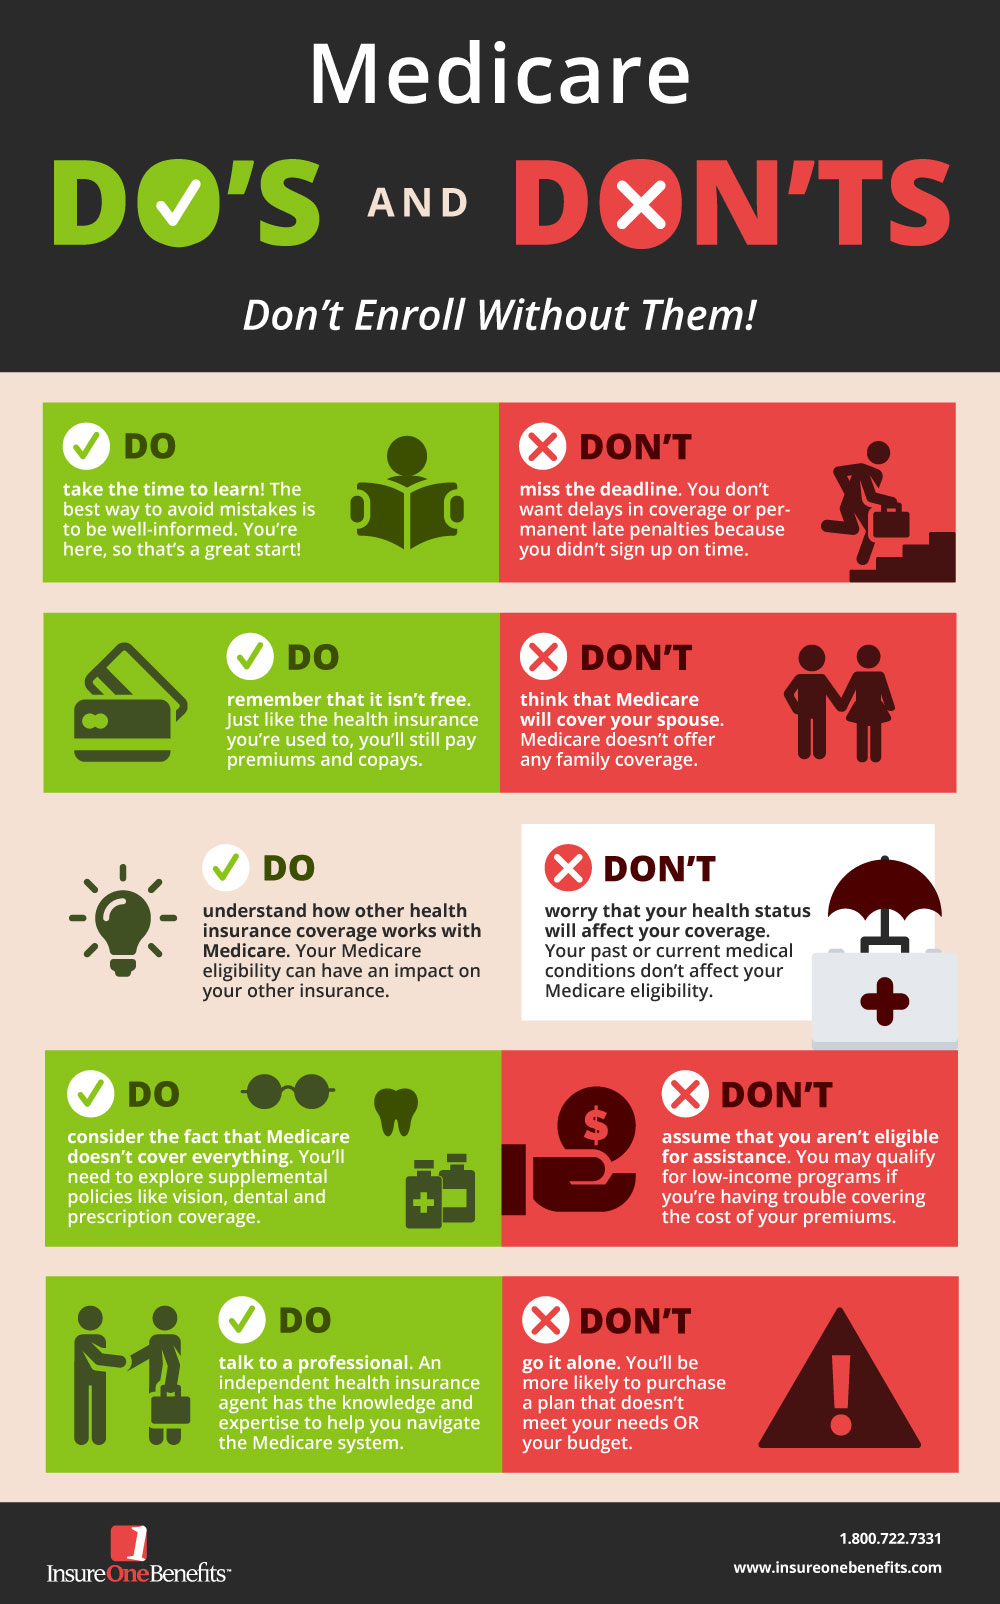 Medicare Do's and Don'ts: Don't Enroll Without Them! PDF Link